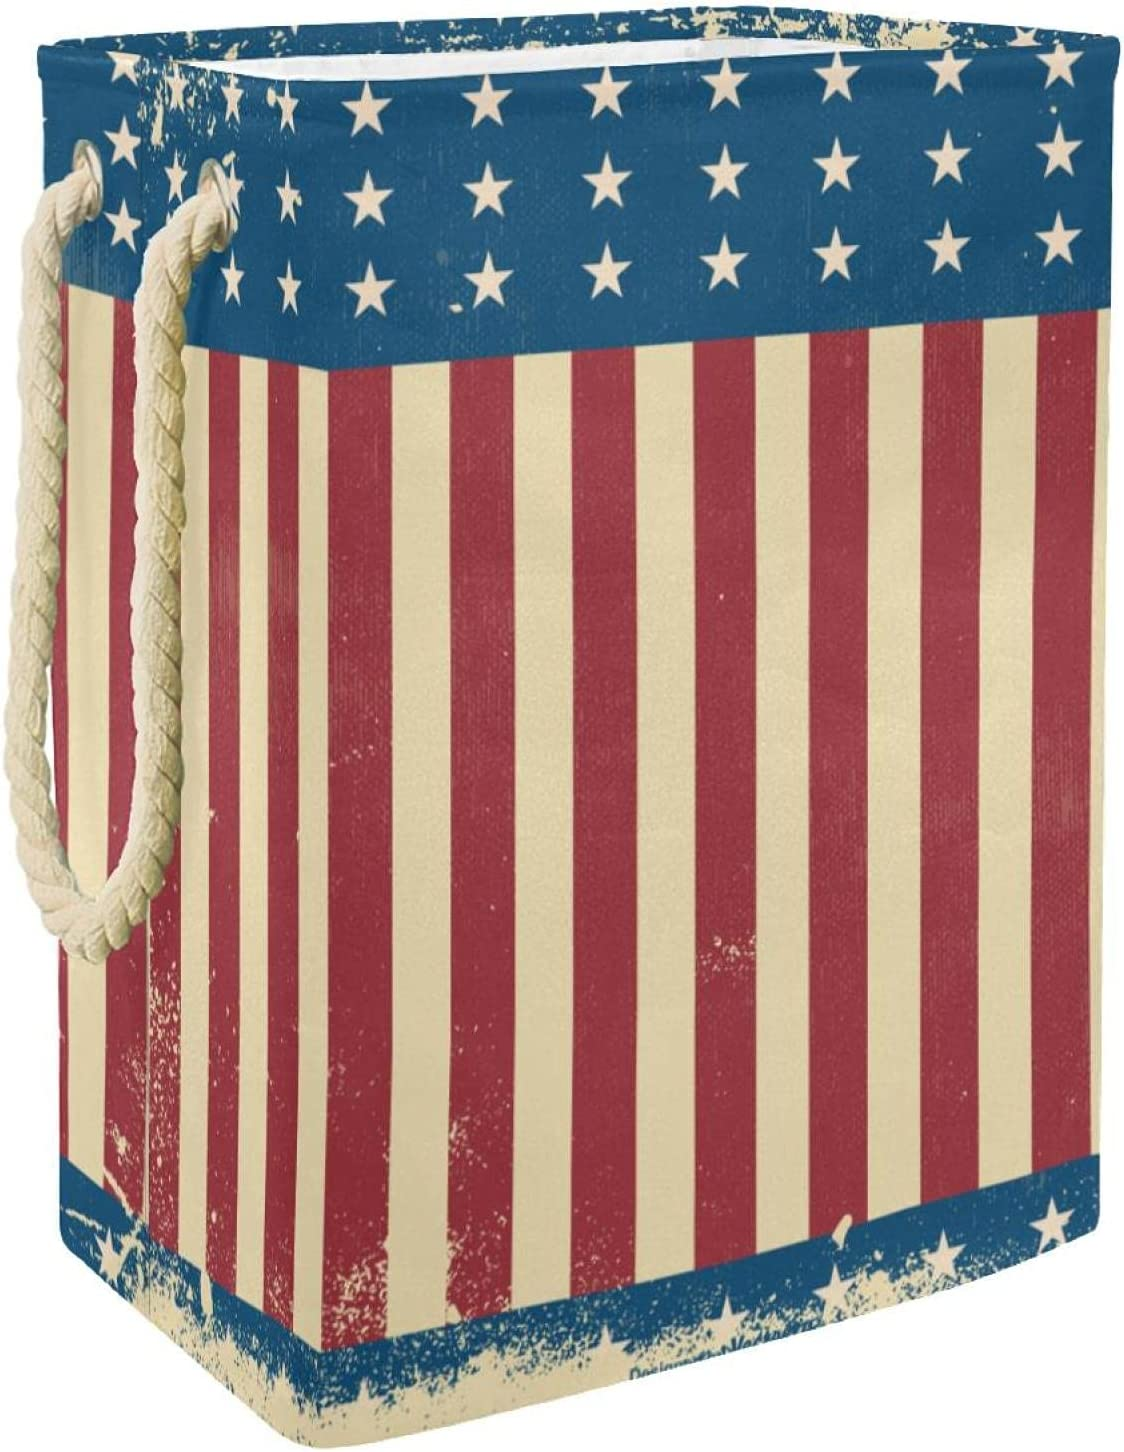 MAPOLO Laundry Hamper Grunge Style San Jose Mall Independnce Foldable Day Line SEAL limited product